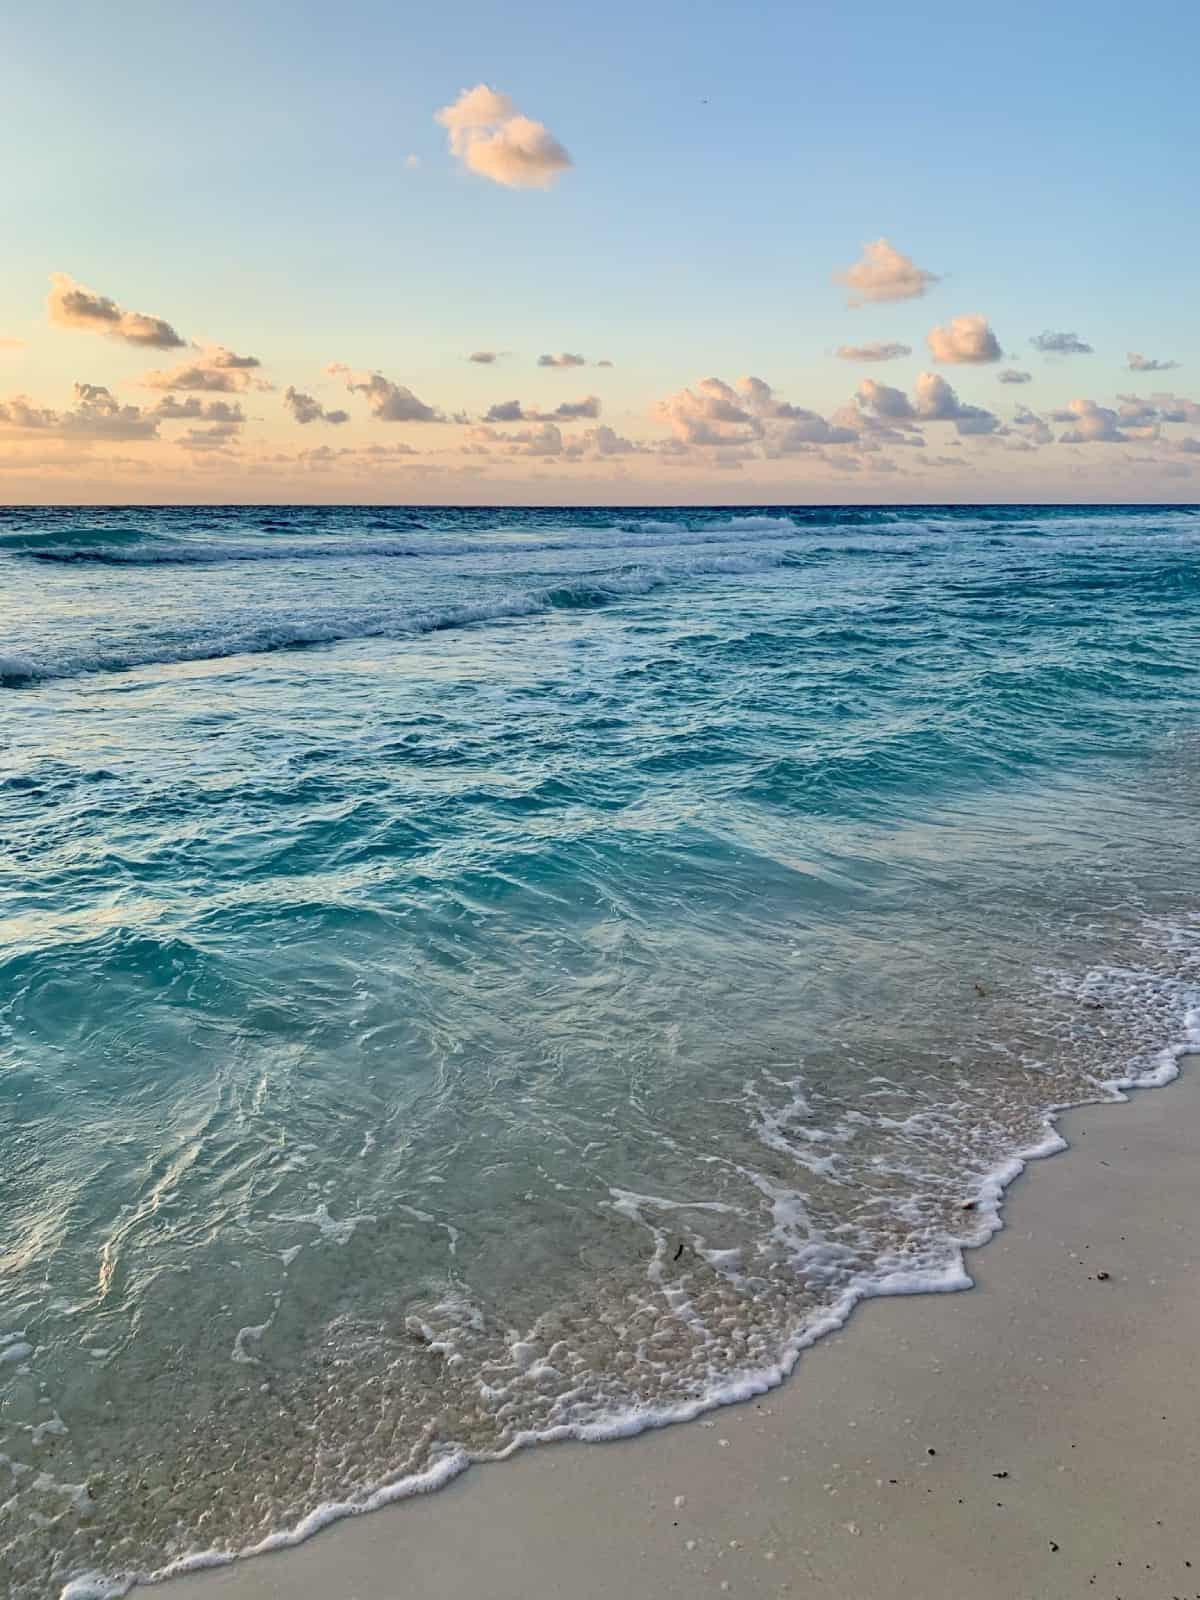 Detailed review of LeBlanc Cancun vs. Excellence Playa Mujeres - sunrise on the beach is gorgeous at both resorts